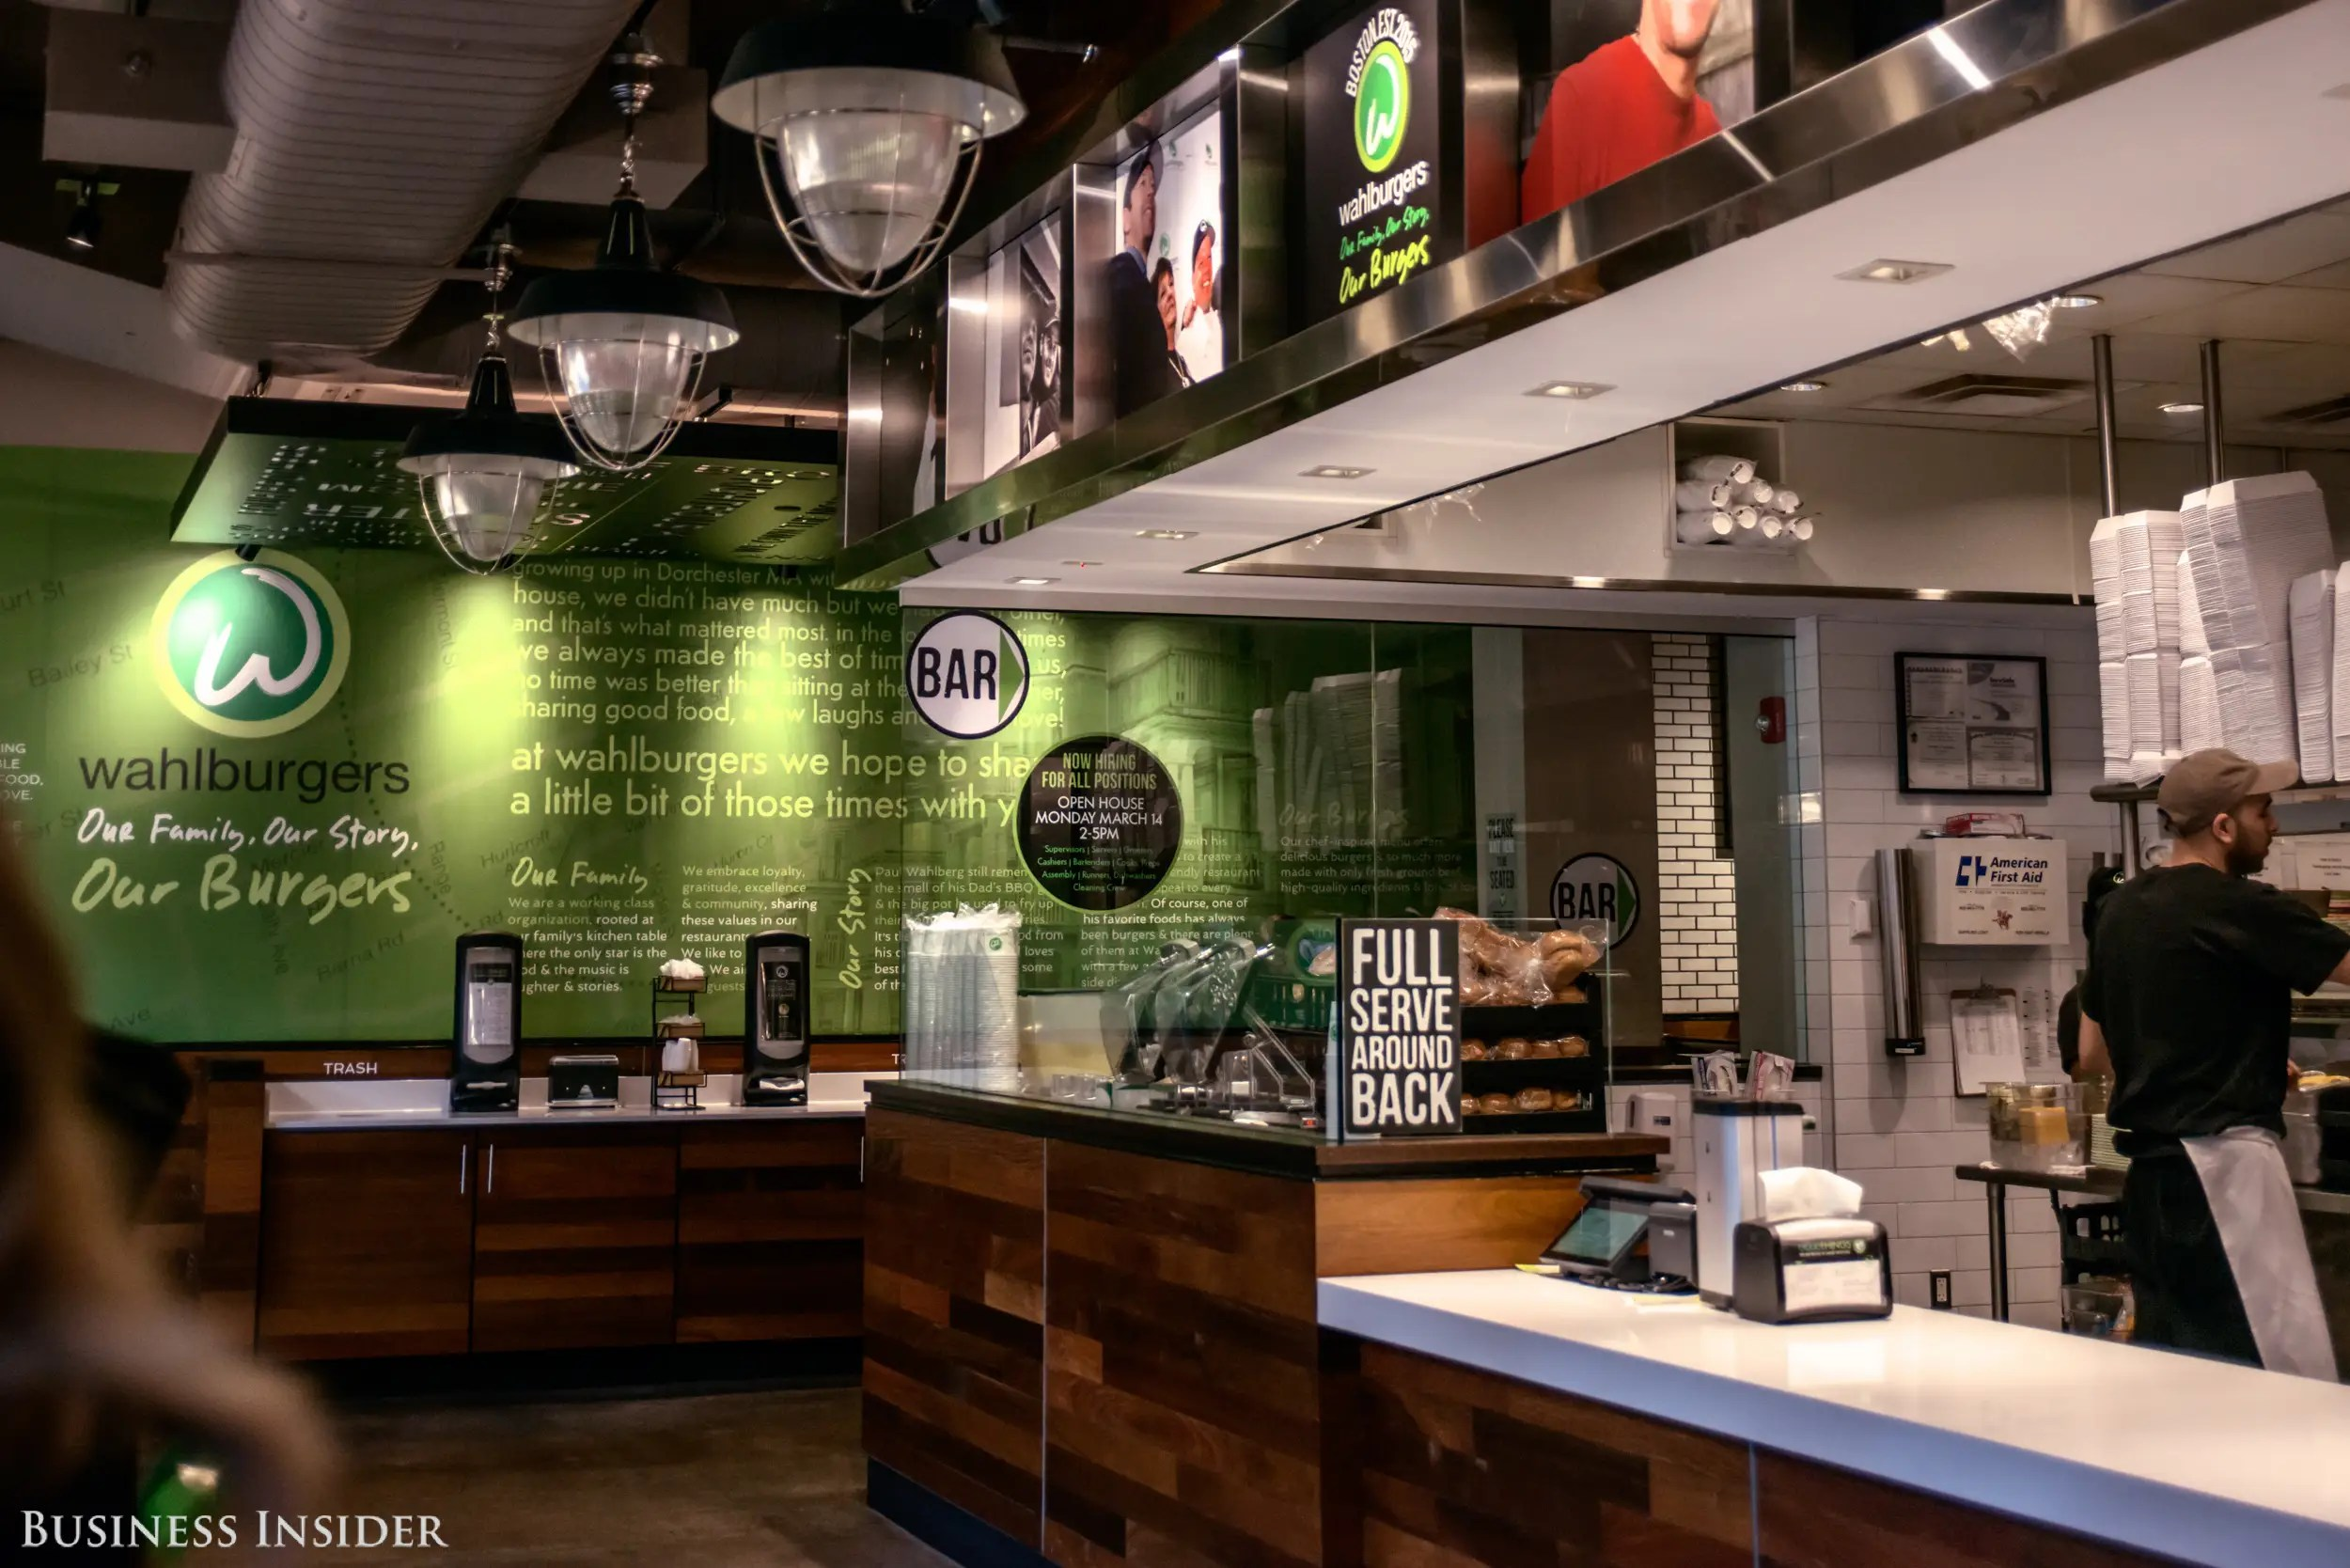 The interior is very slick and modern, and it has the ubiquitous fast-casual combo of warm woods and sleek brushed steel. The look is almost dated at this point, given how many Chipotle and Shake Shack clones have followed suit. Green is the dominant color at Wahlburgers, however, with most surfaces sporting some shade or another.